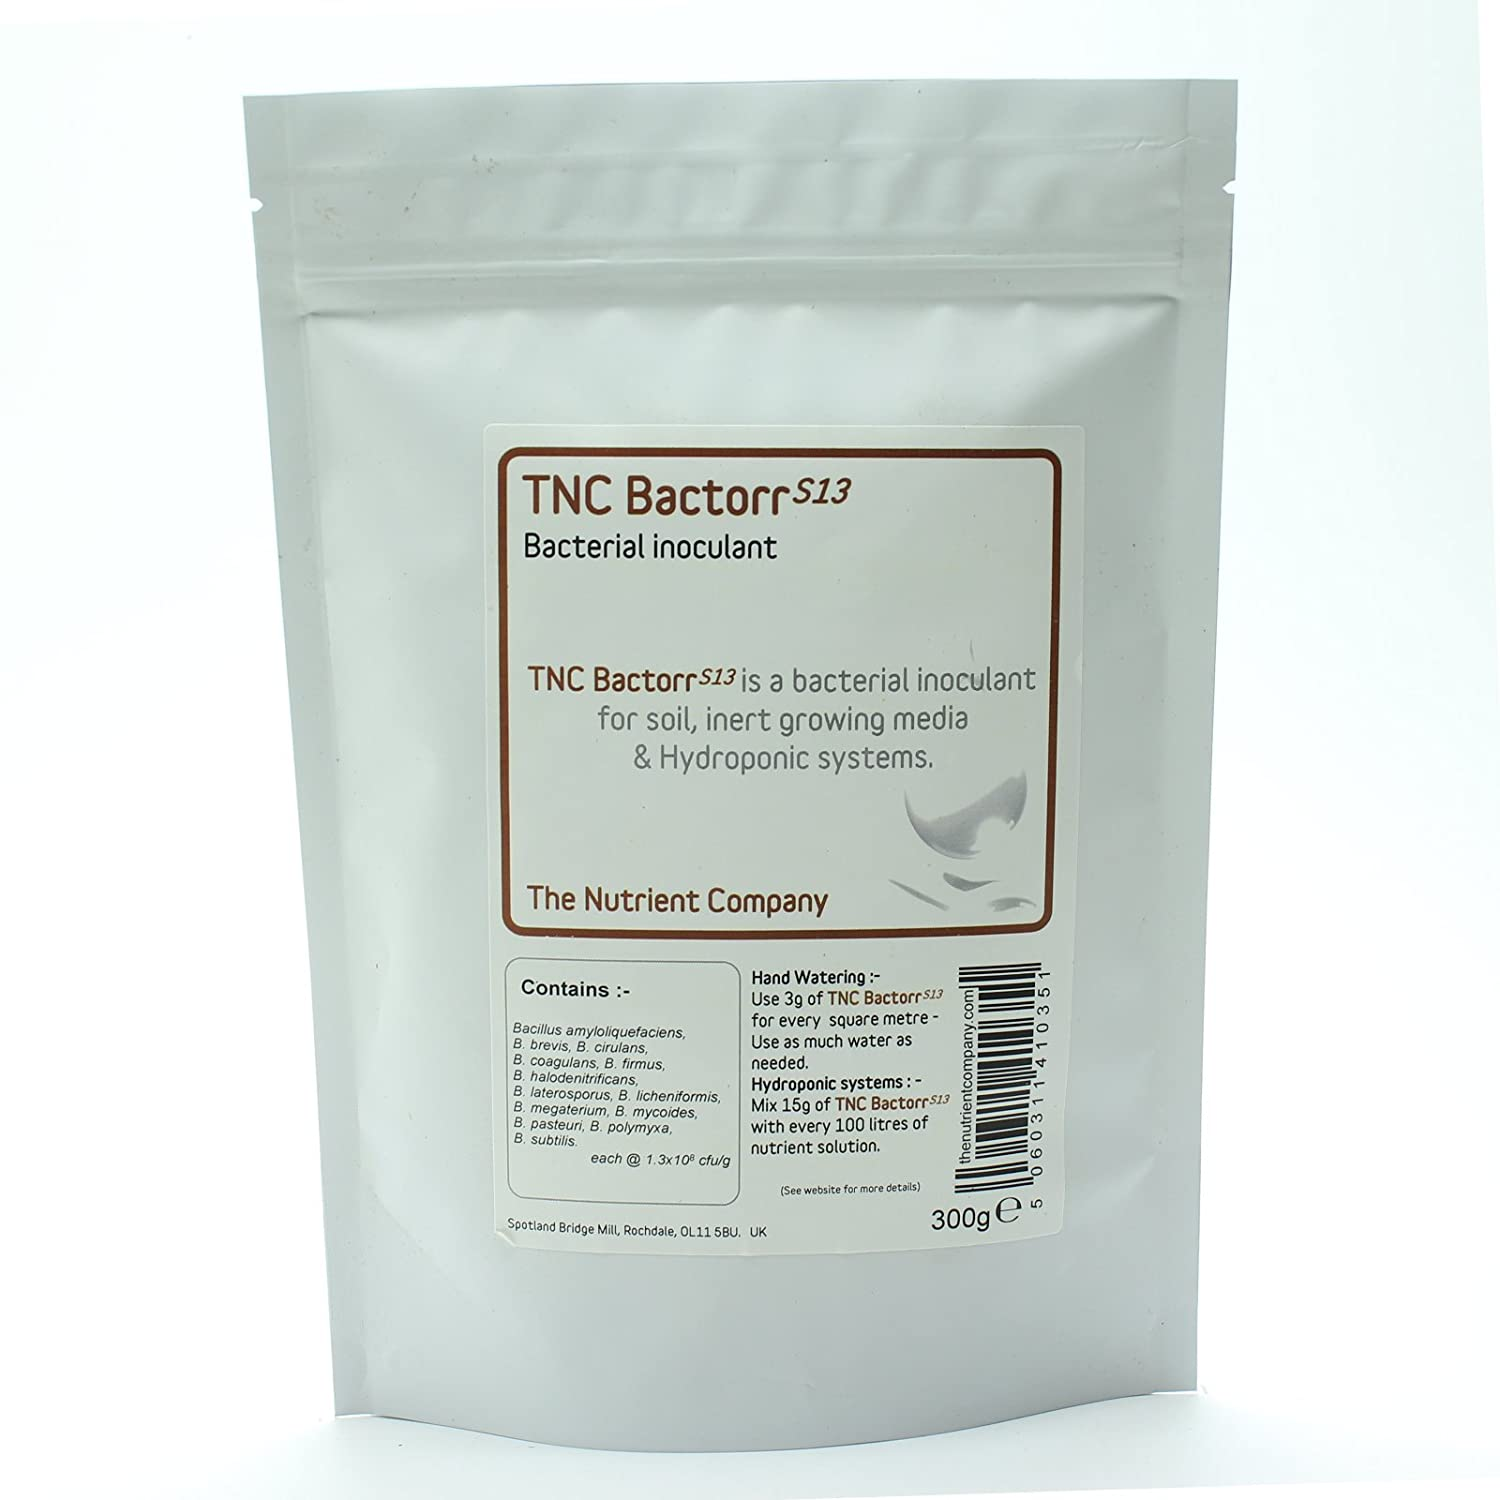 TNC BactorrS13 - Beneficial Bacteria for Compost Tea, Hydroponics & Horticulture - Soil Microbes (75g) The Nutrient Company